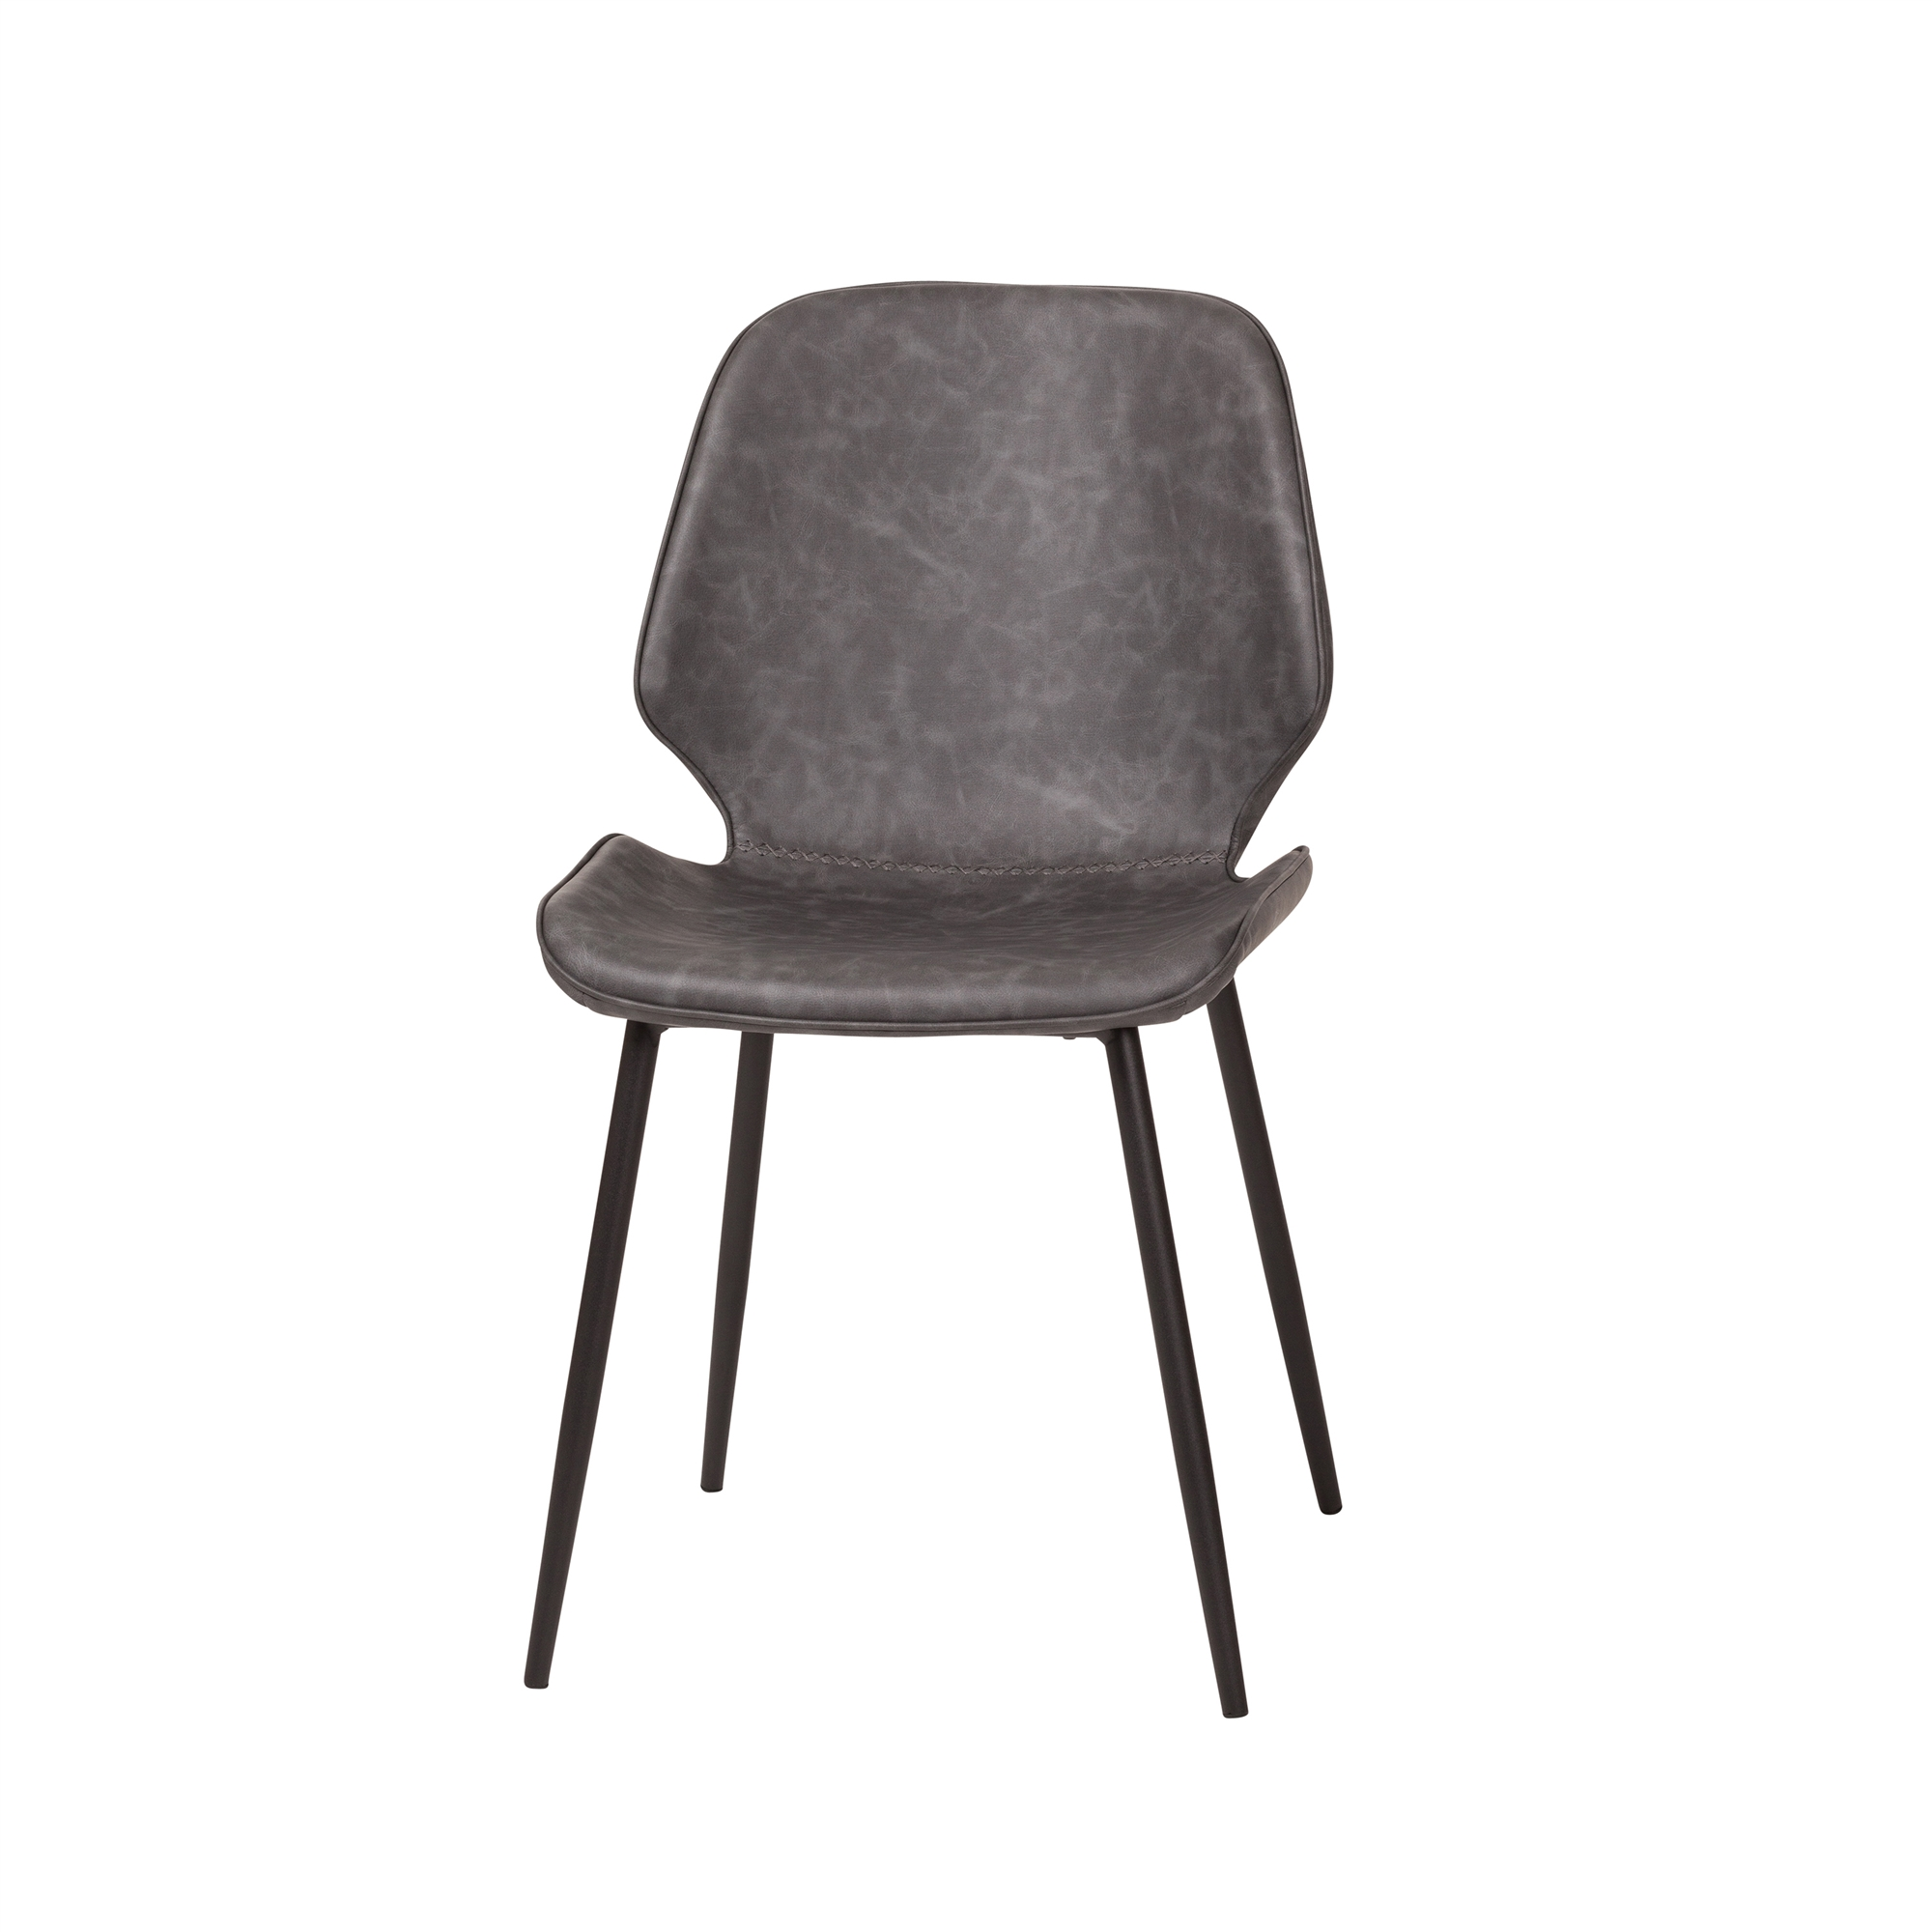 Cougar Distressed Grey Leather Dining Chair